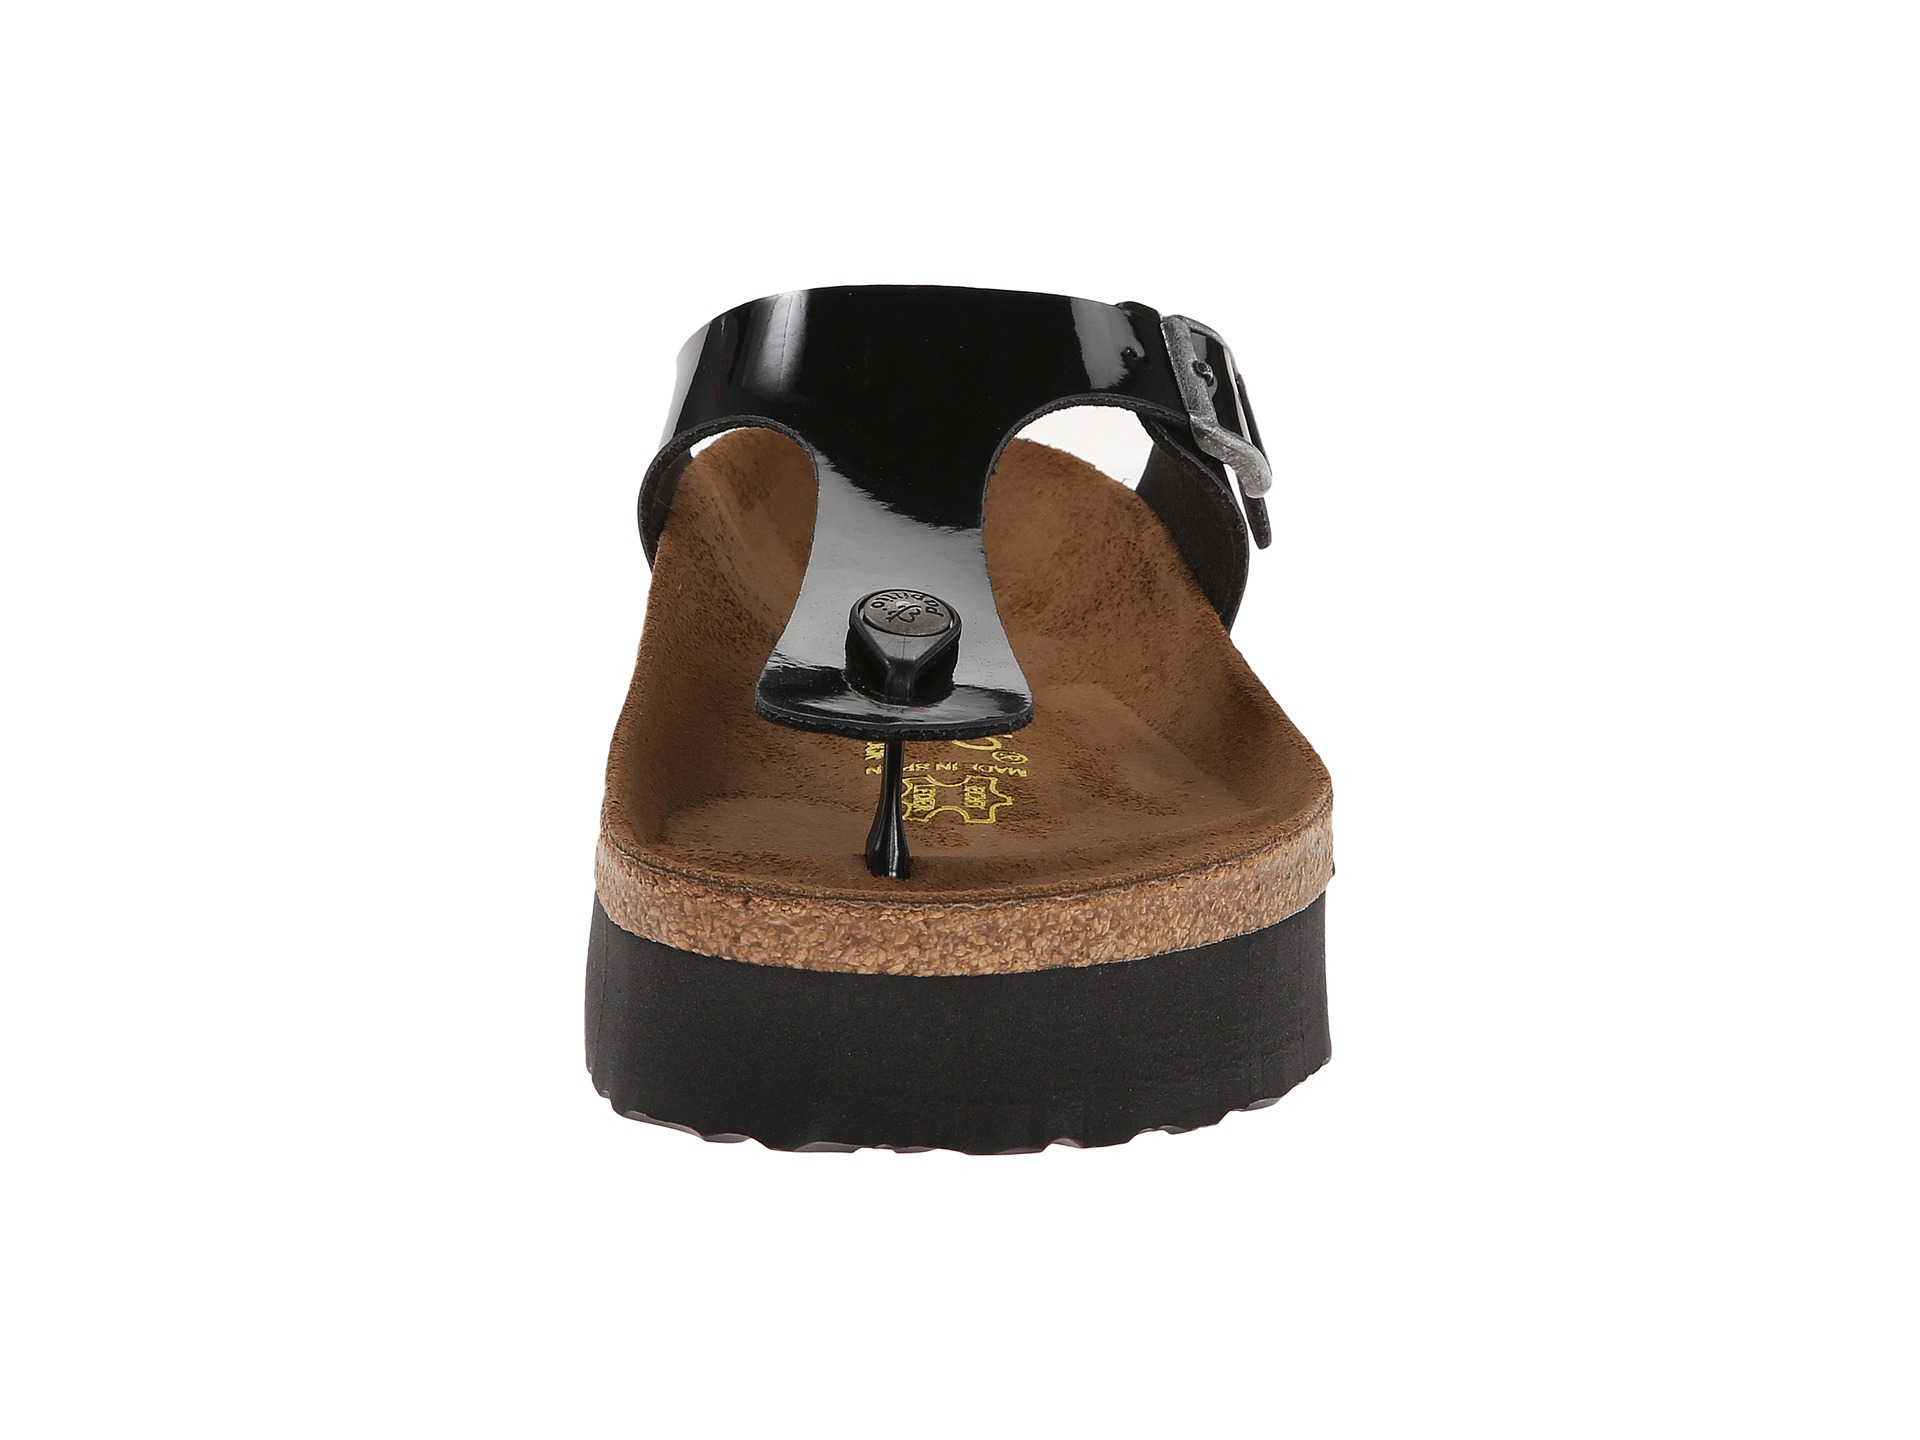 9c2d3c808021 Gallery. Previously sold at  Zappos · Women s Birkenstock Gizeh Women s  Burberry Hodgeson Women s Tie Up Sandals ...